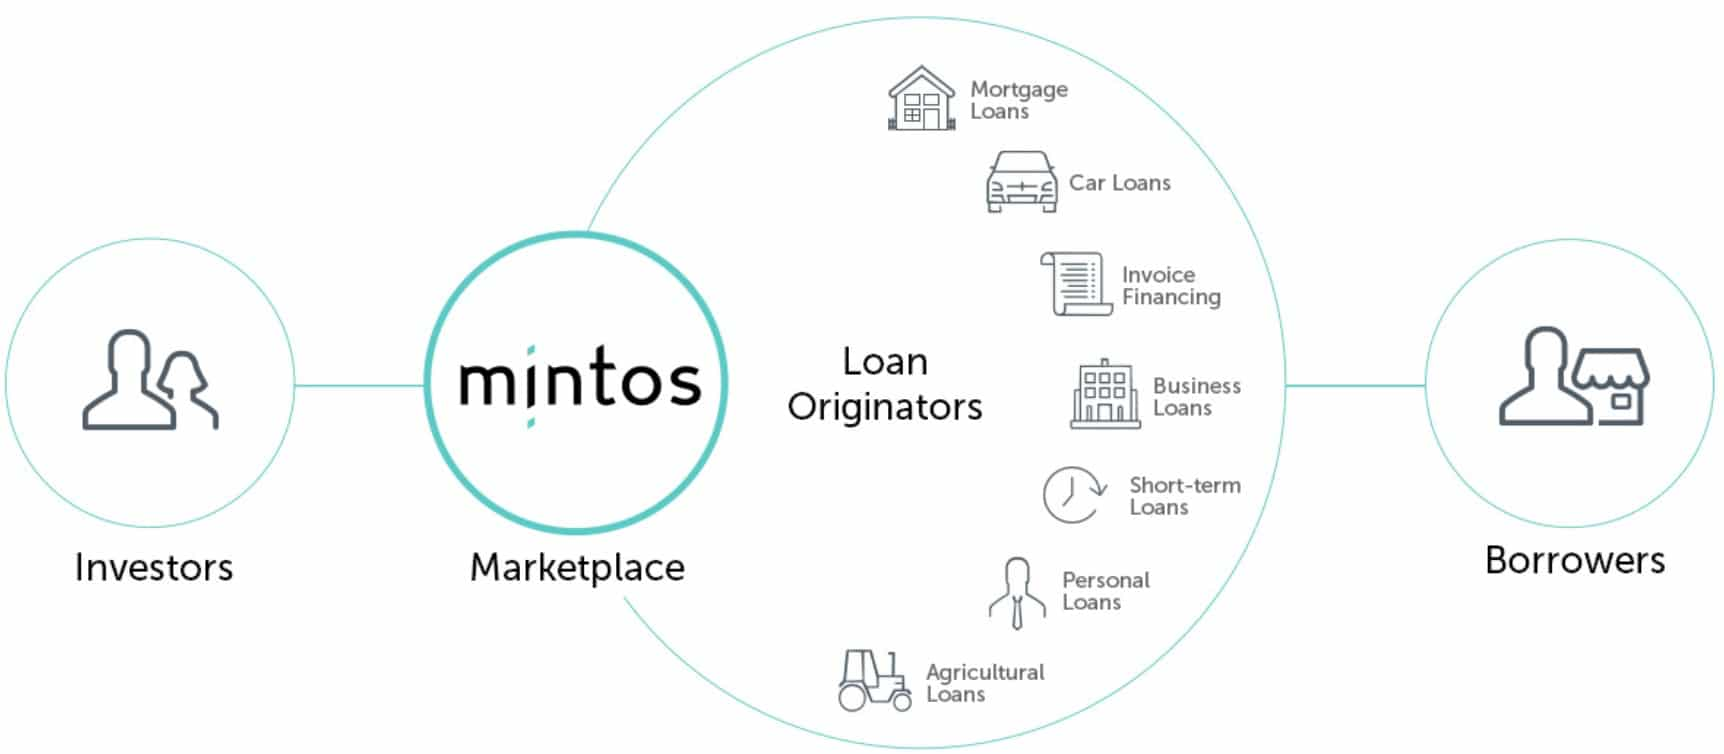 How does Mintos work?